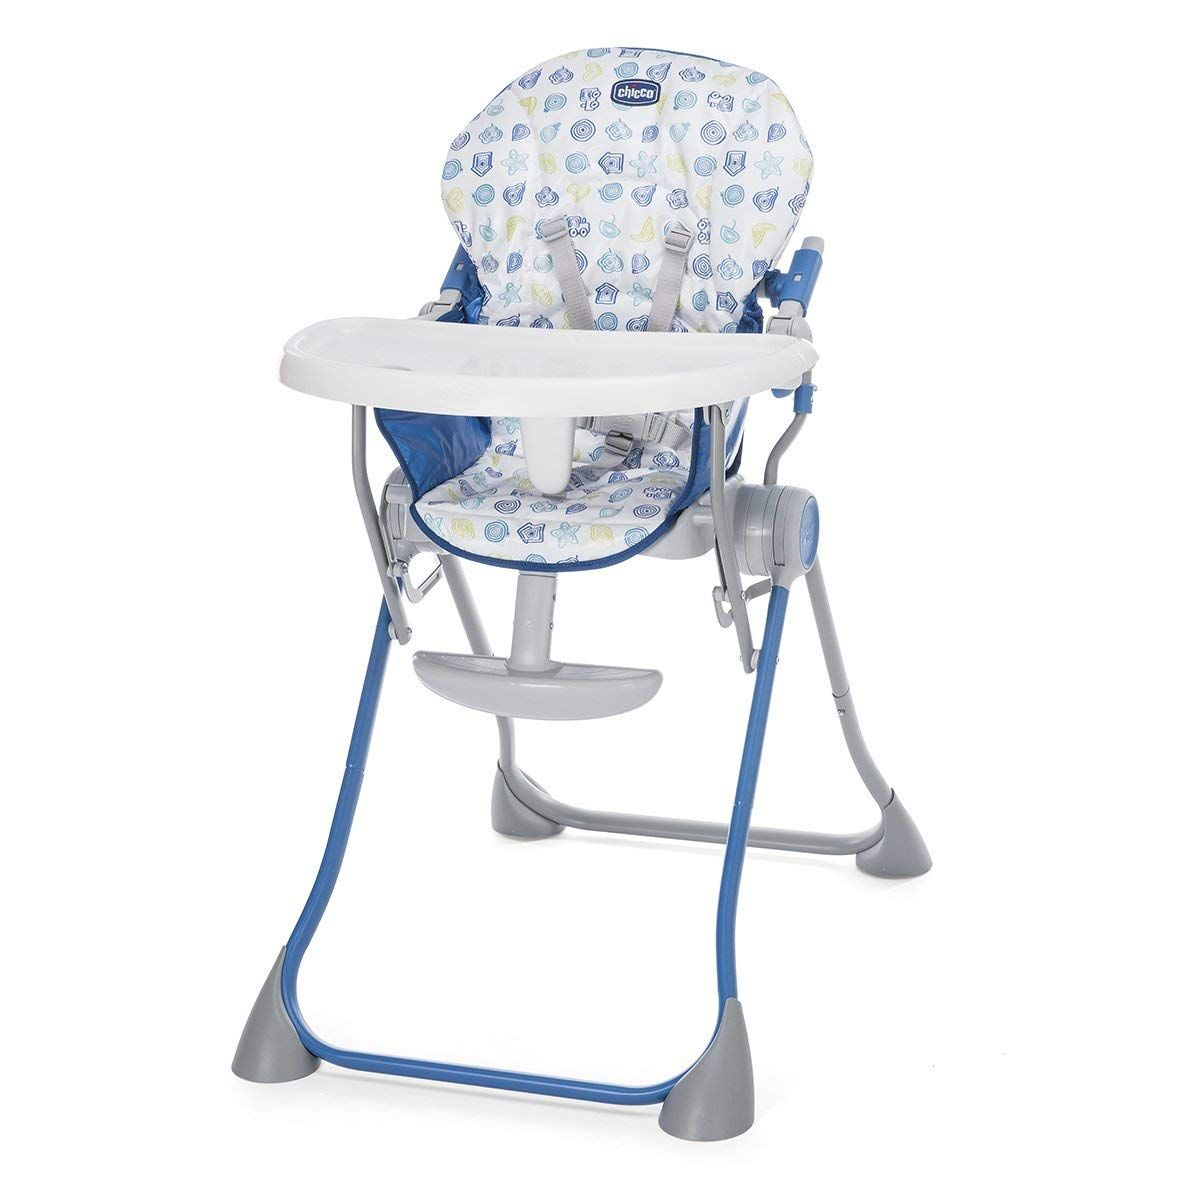 Baby Food Chair High Chair Or Booster Seat Or A Combination Your Ultimate Guide